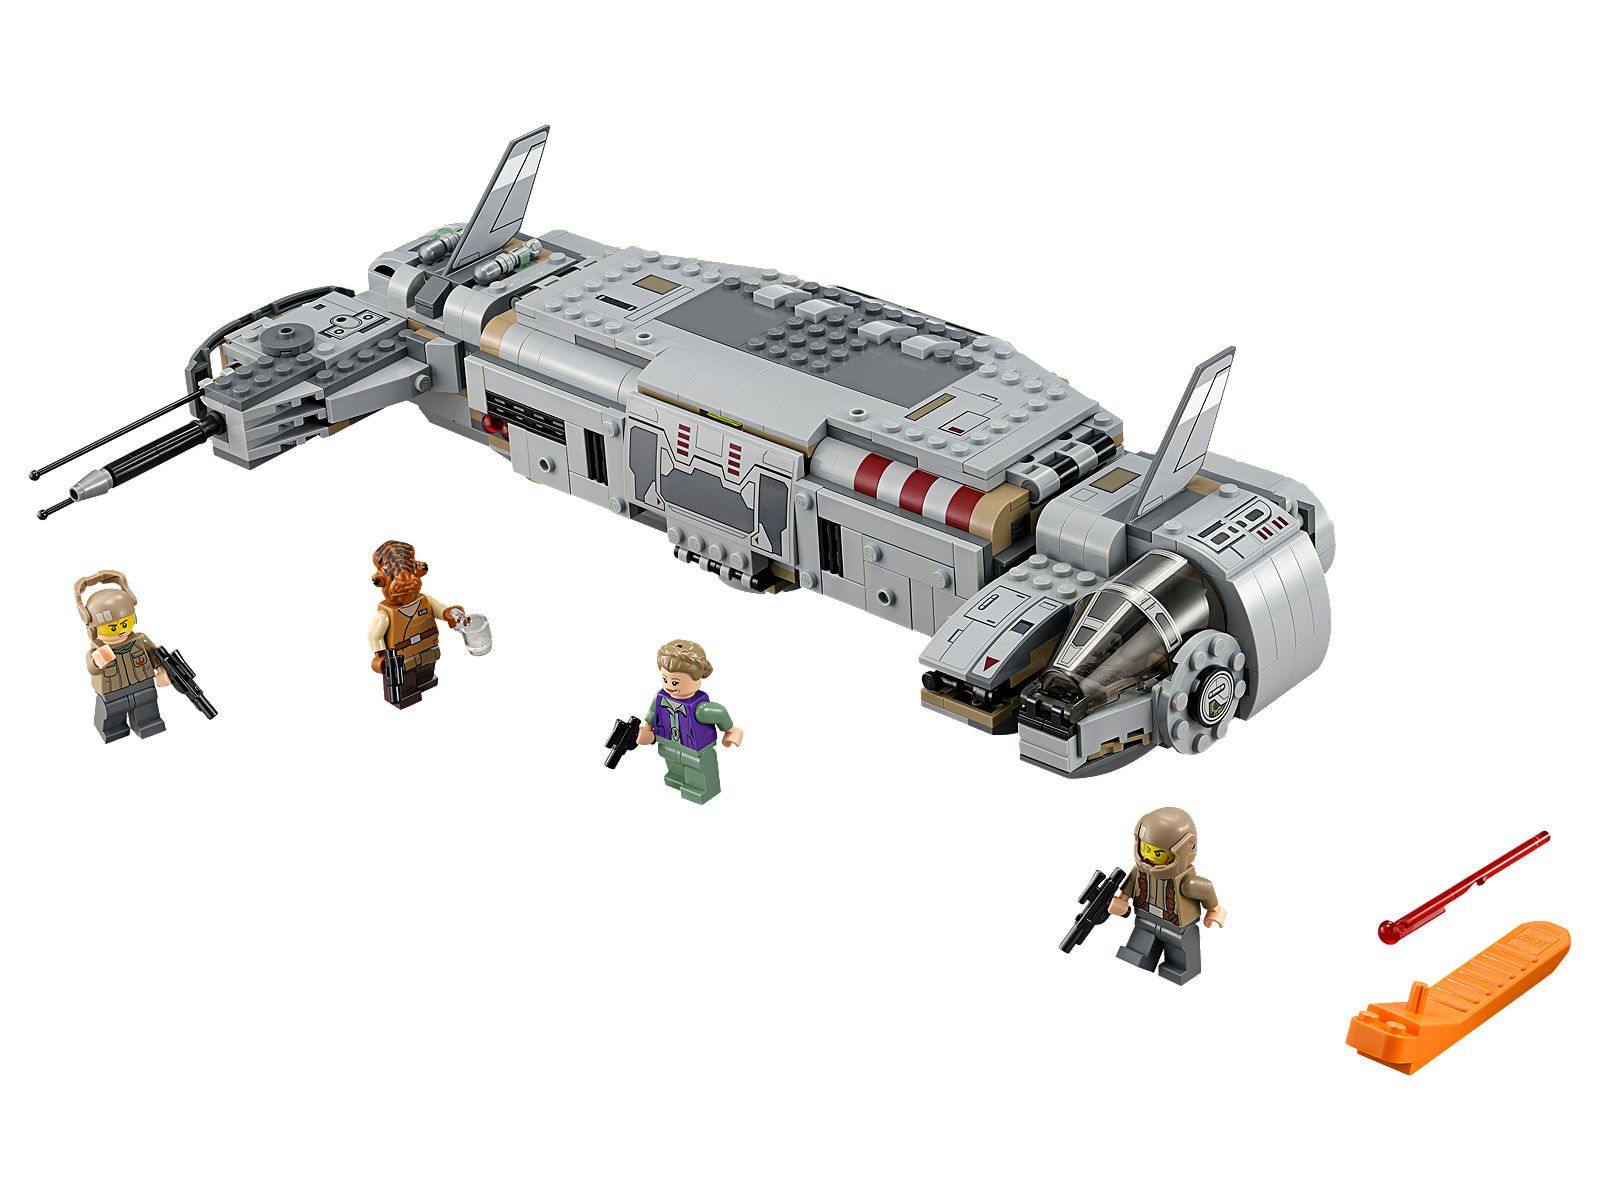 lego star wars tfa and others 75139 75126 75132 75140 75131 and others official images posted to. Black Bedroom Furniture Sets. Home Design Ideas